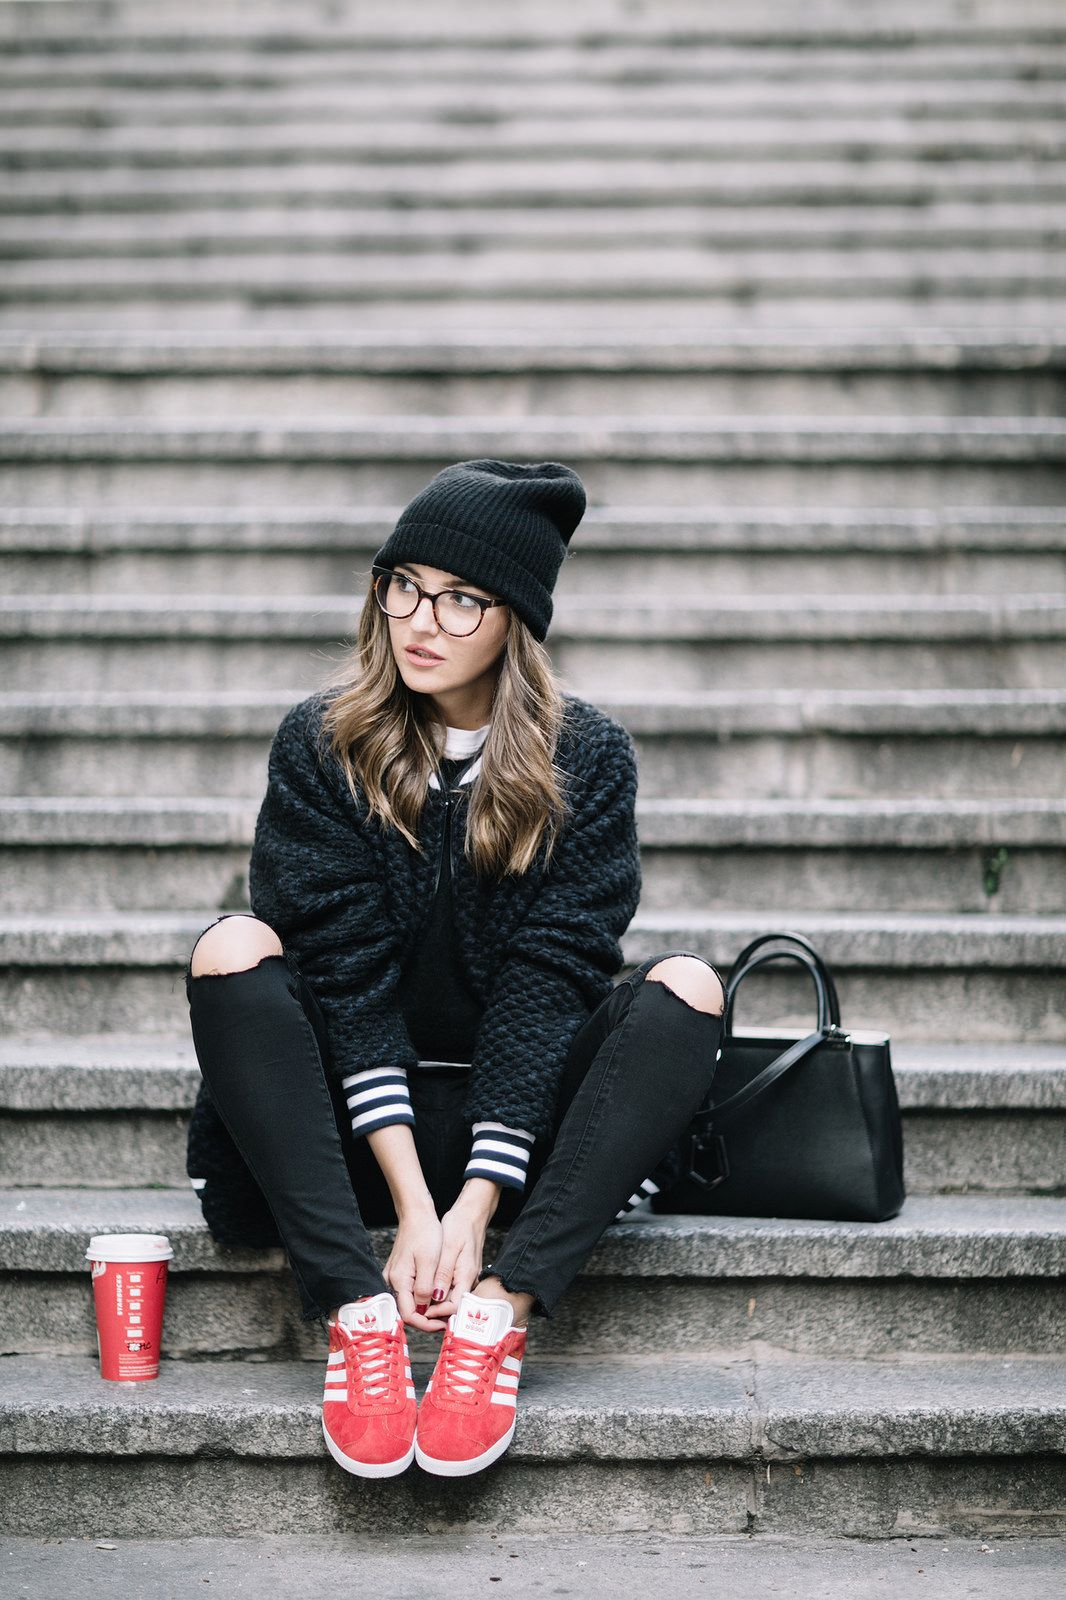 best service 4234c de724 Red Gazelles!!!!!!!!!!!!! COMFY OUTFIT + HOT CHOCOLATE - Lovely Pepa by  Alexandra